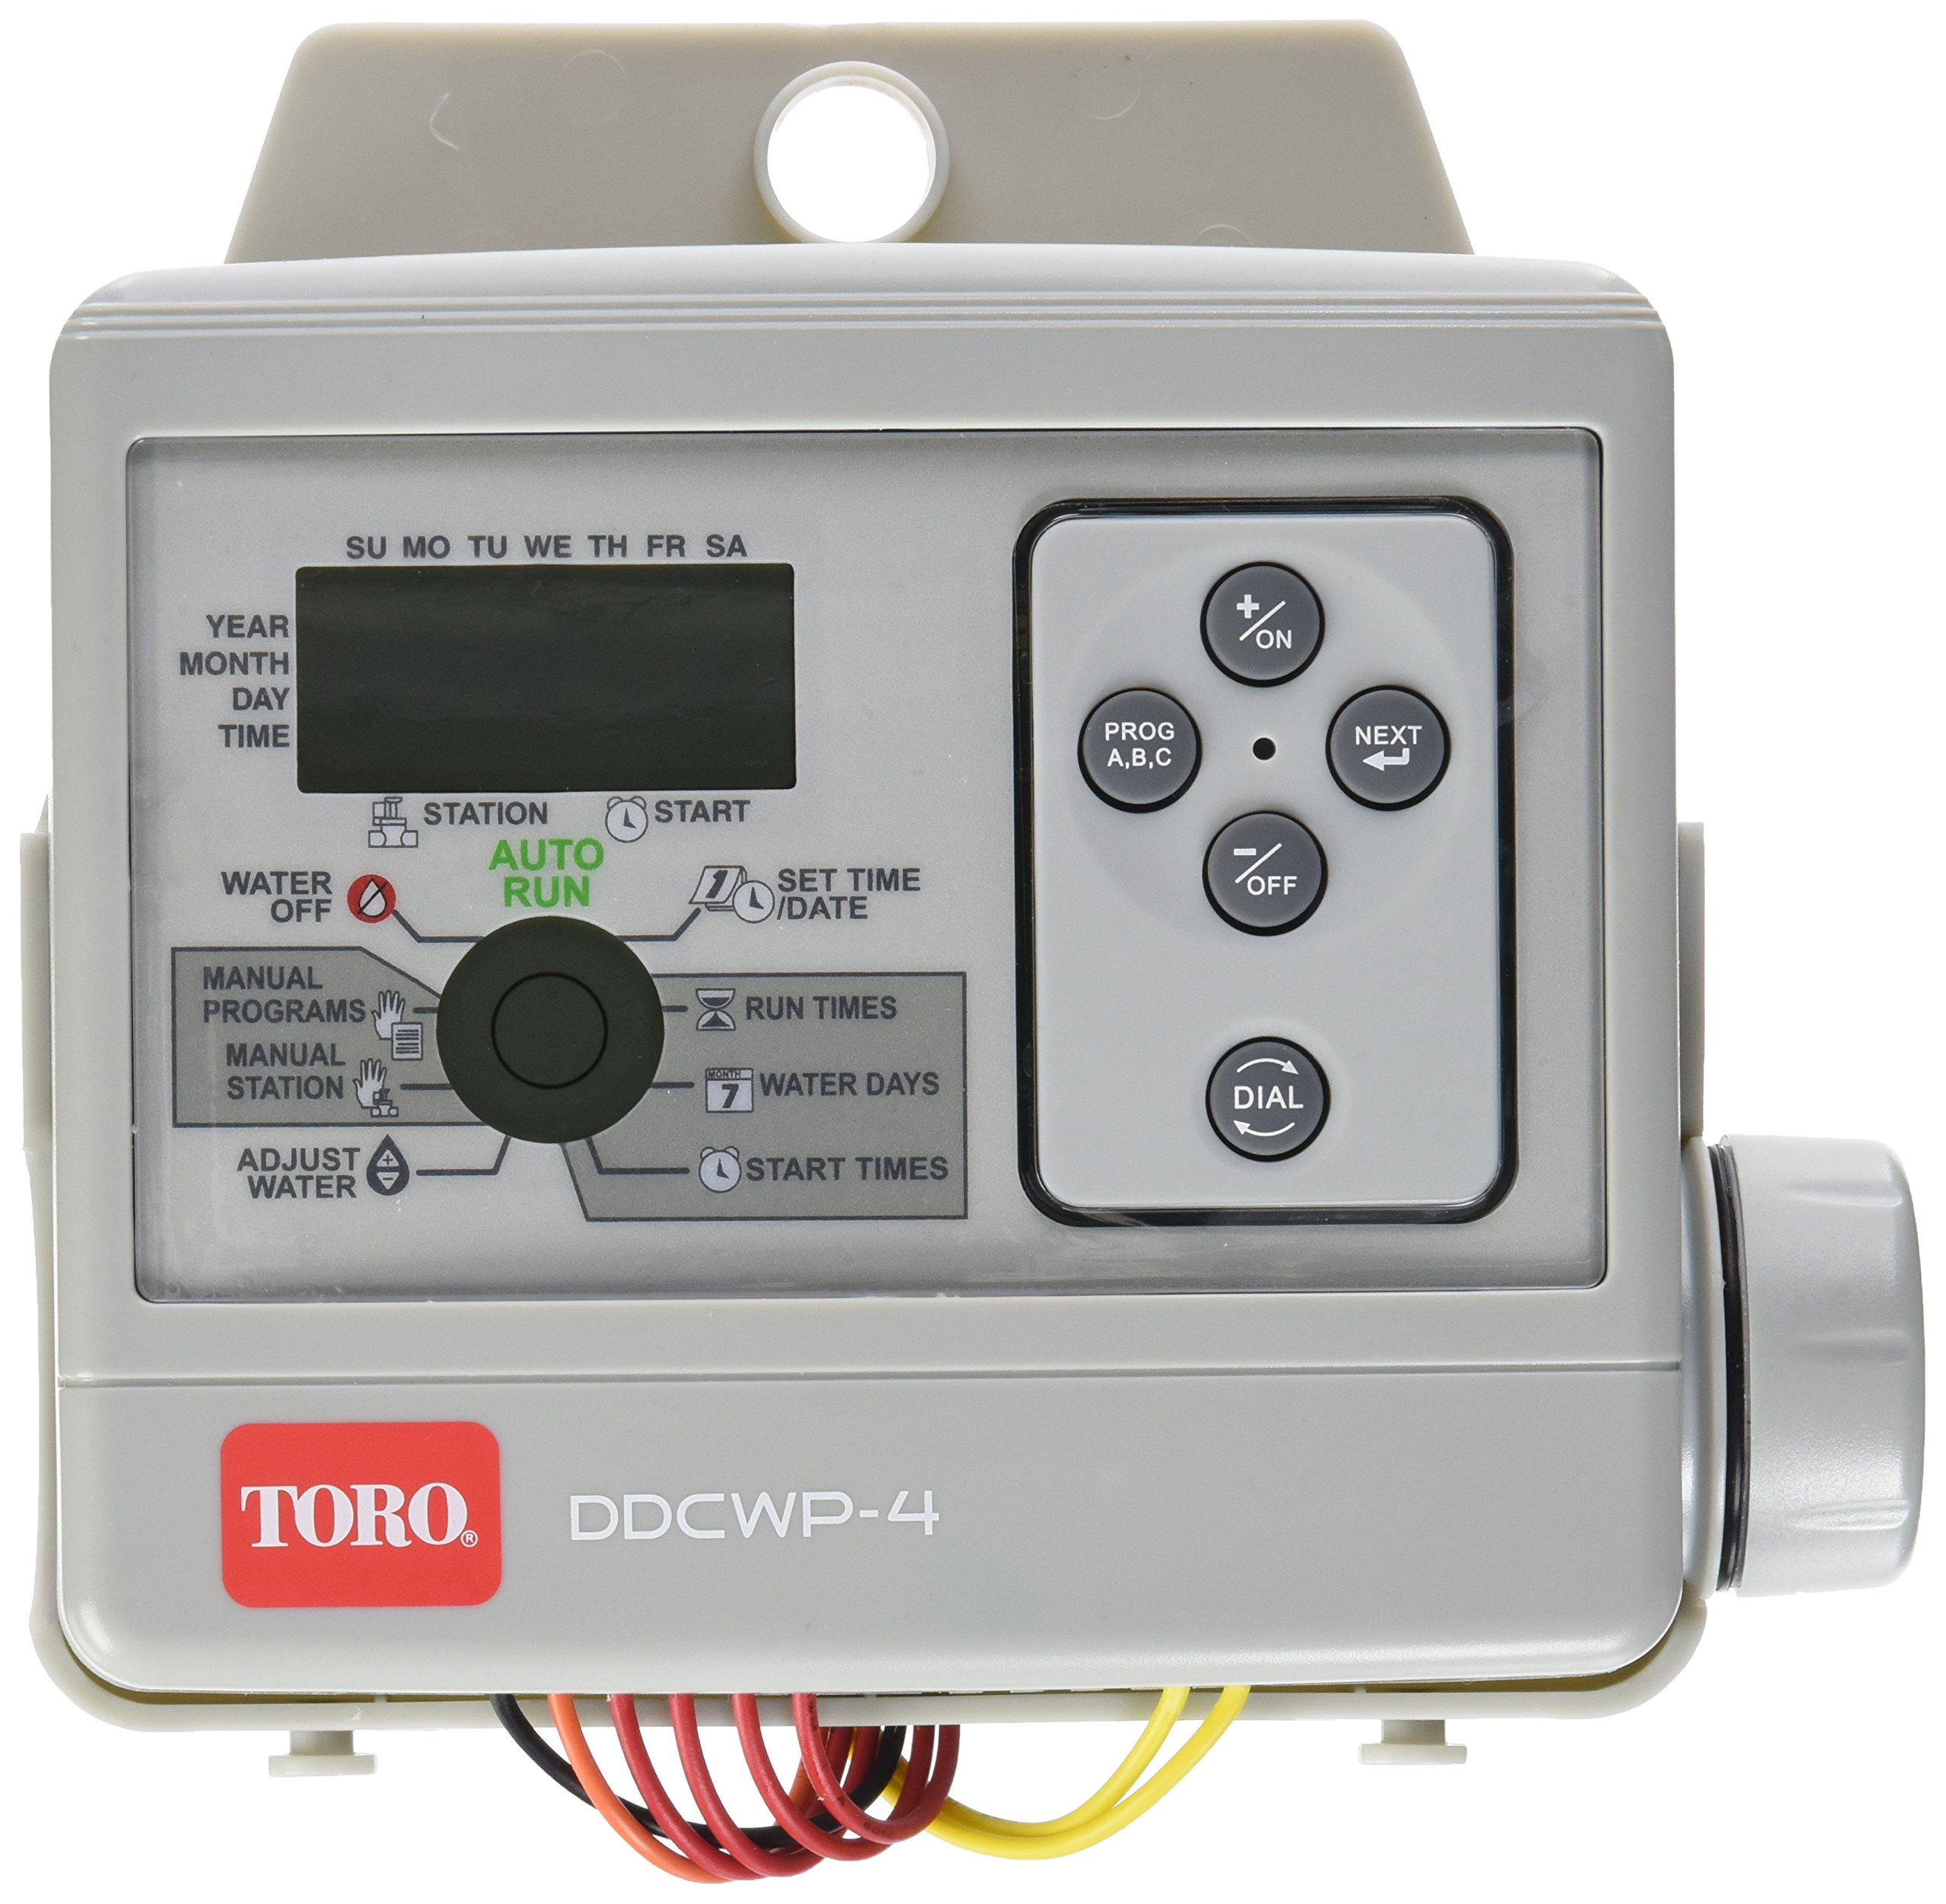 Toro DDCWP-4-9V Waterproof 4 Station Battery Controlled Controller by Toro